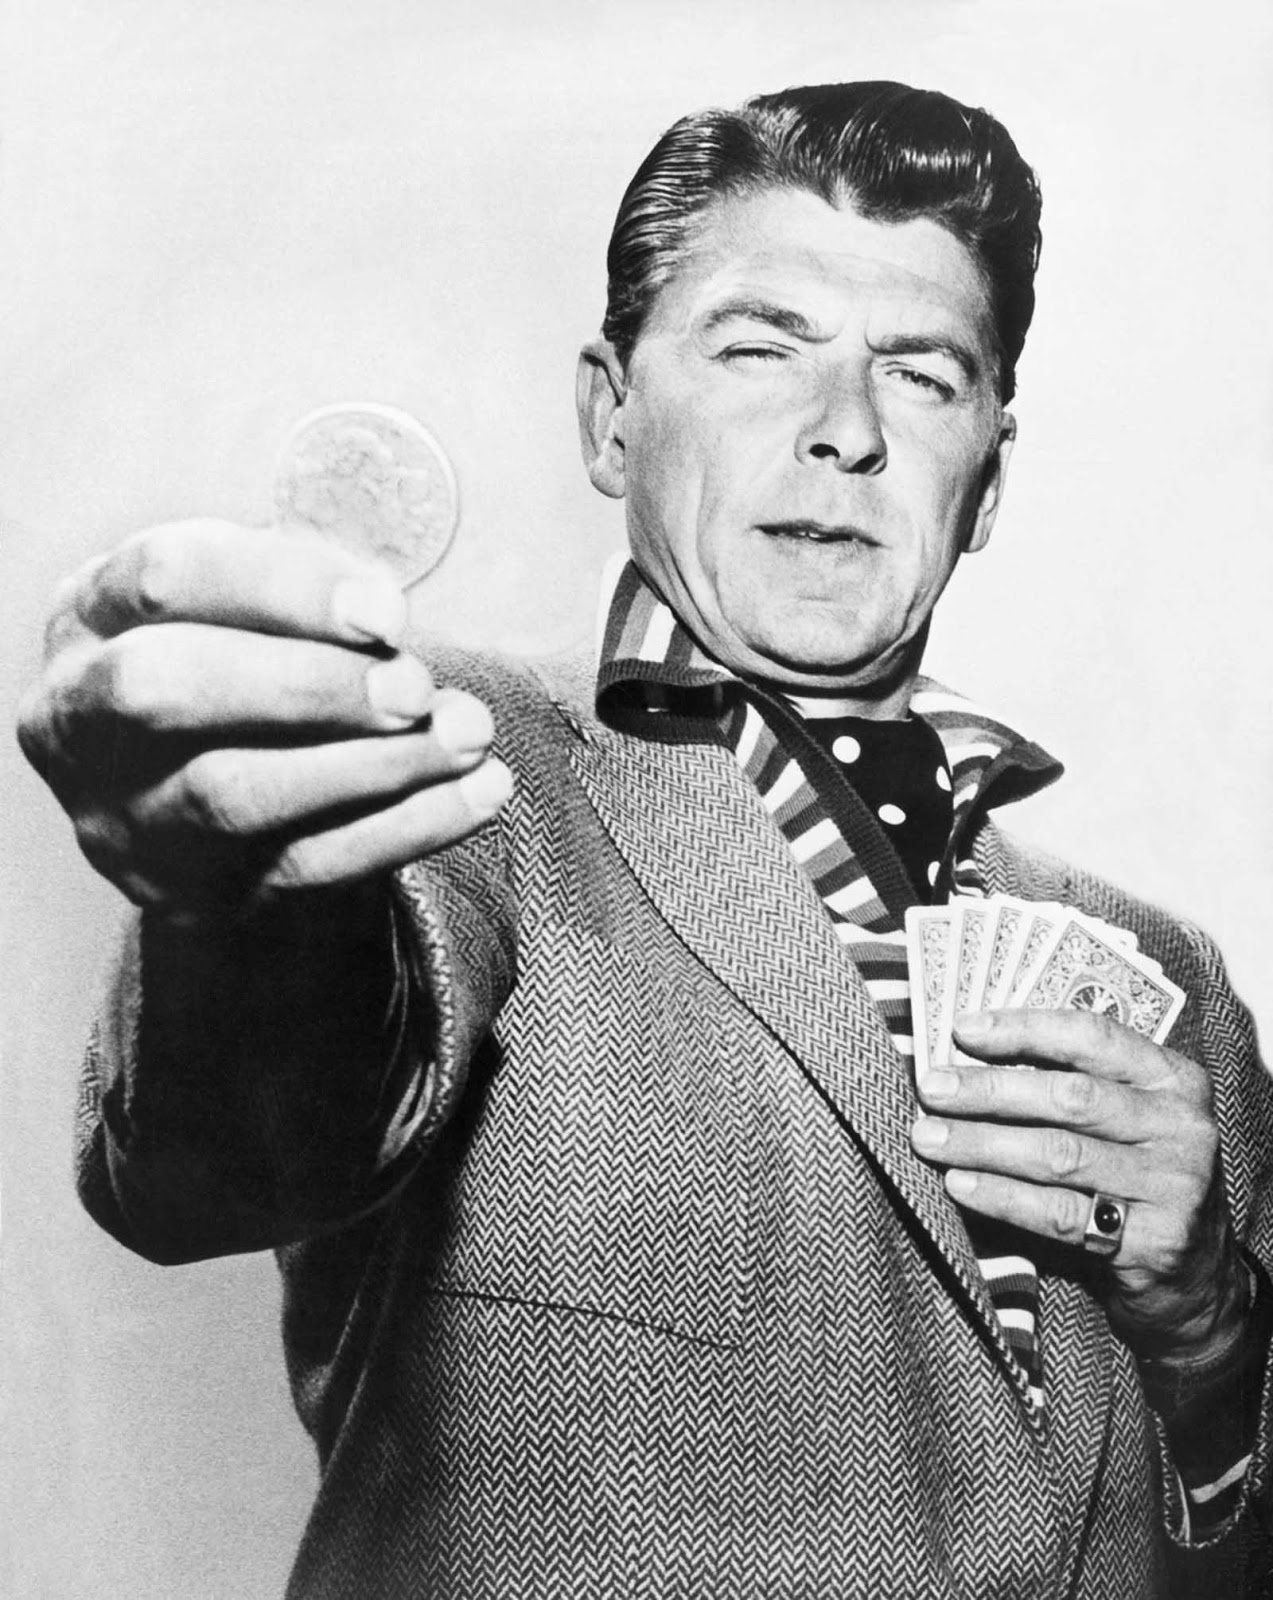 Reagan actúa en el teleplay de General Electric Theatre CBS The Lord's Dollar. 1958.